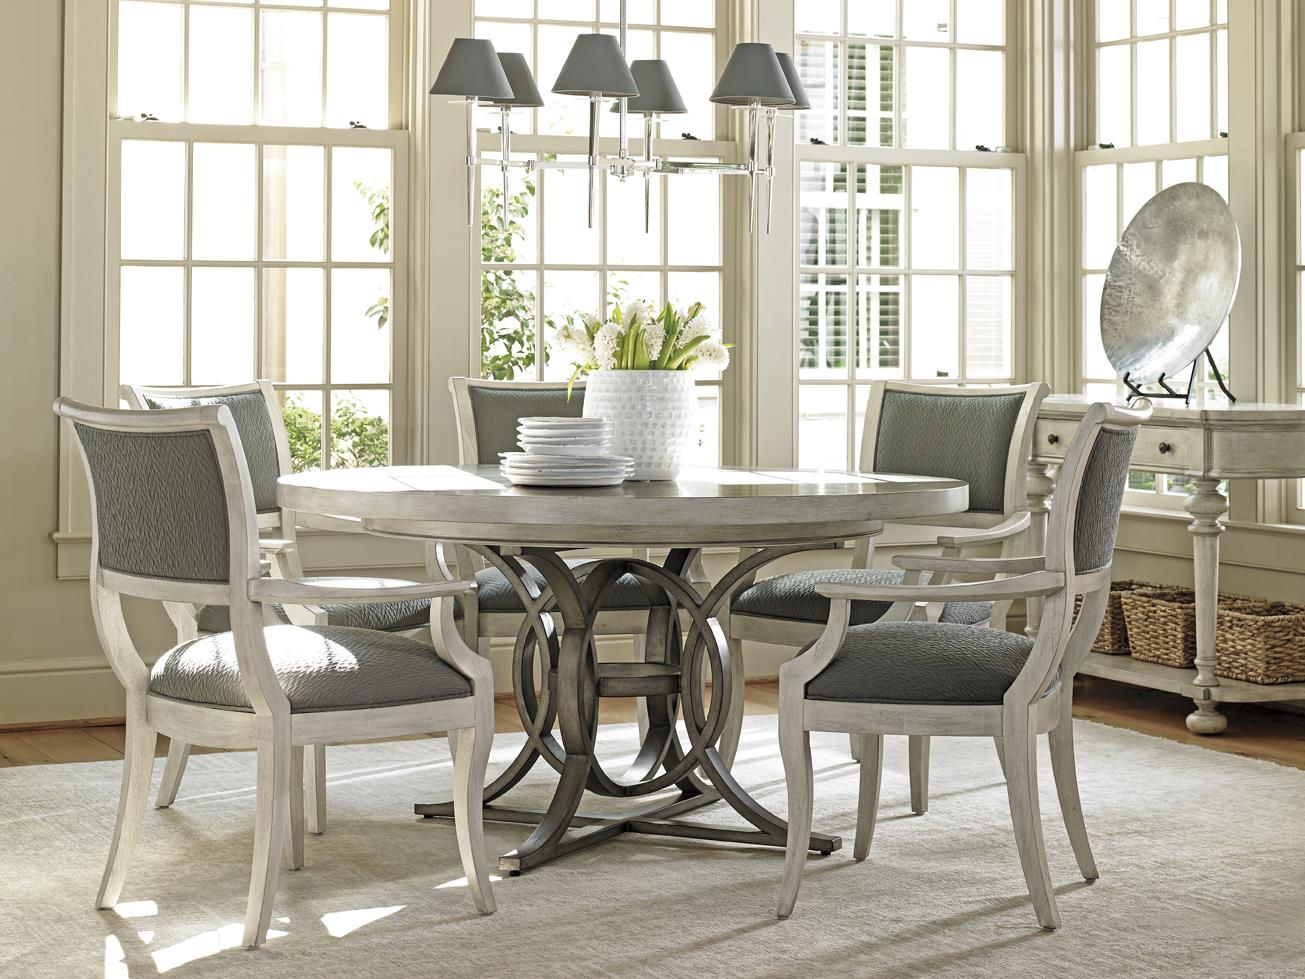 Lexington Oyster Bay 714 875c Calerton Round Dining Table With Extension Leaf Baer 39 S Furniture